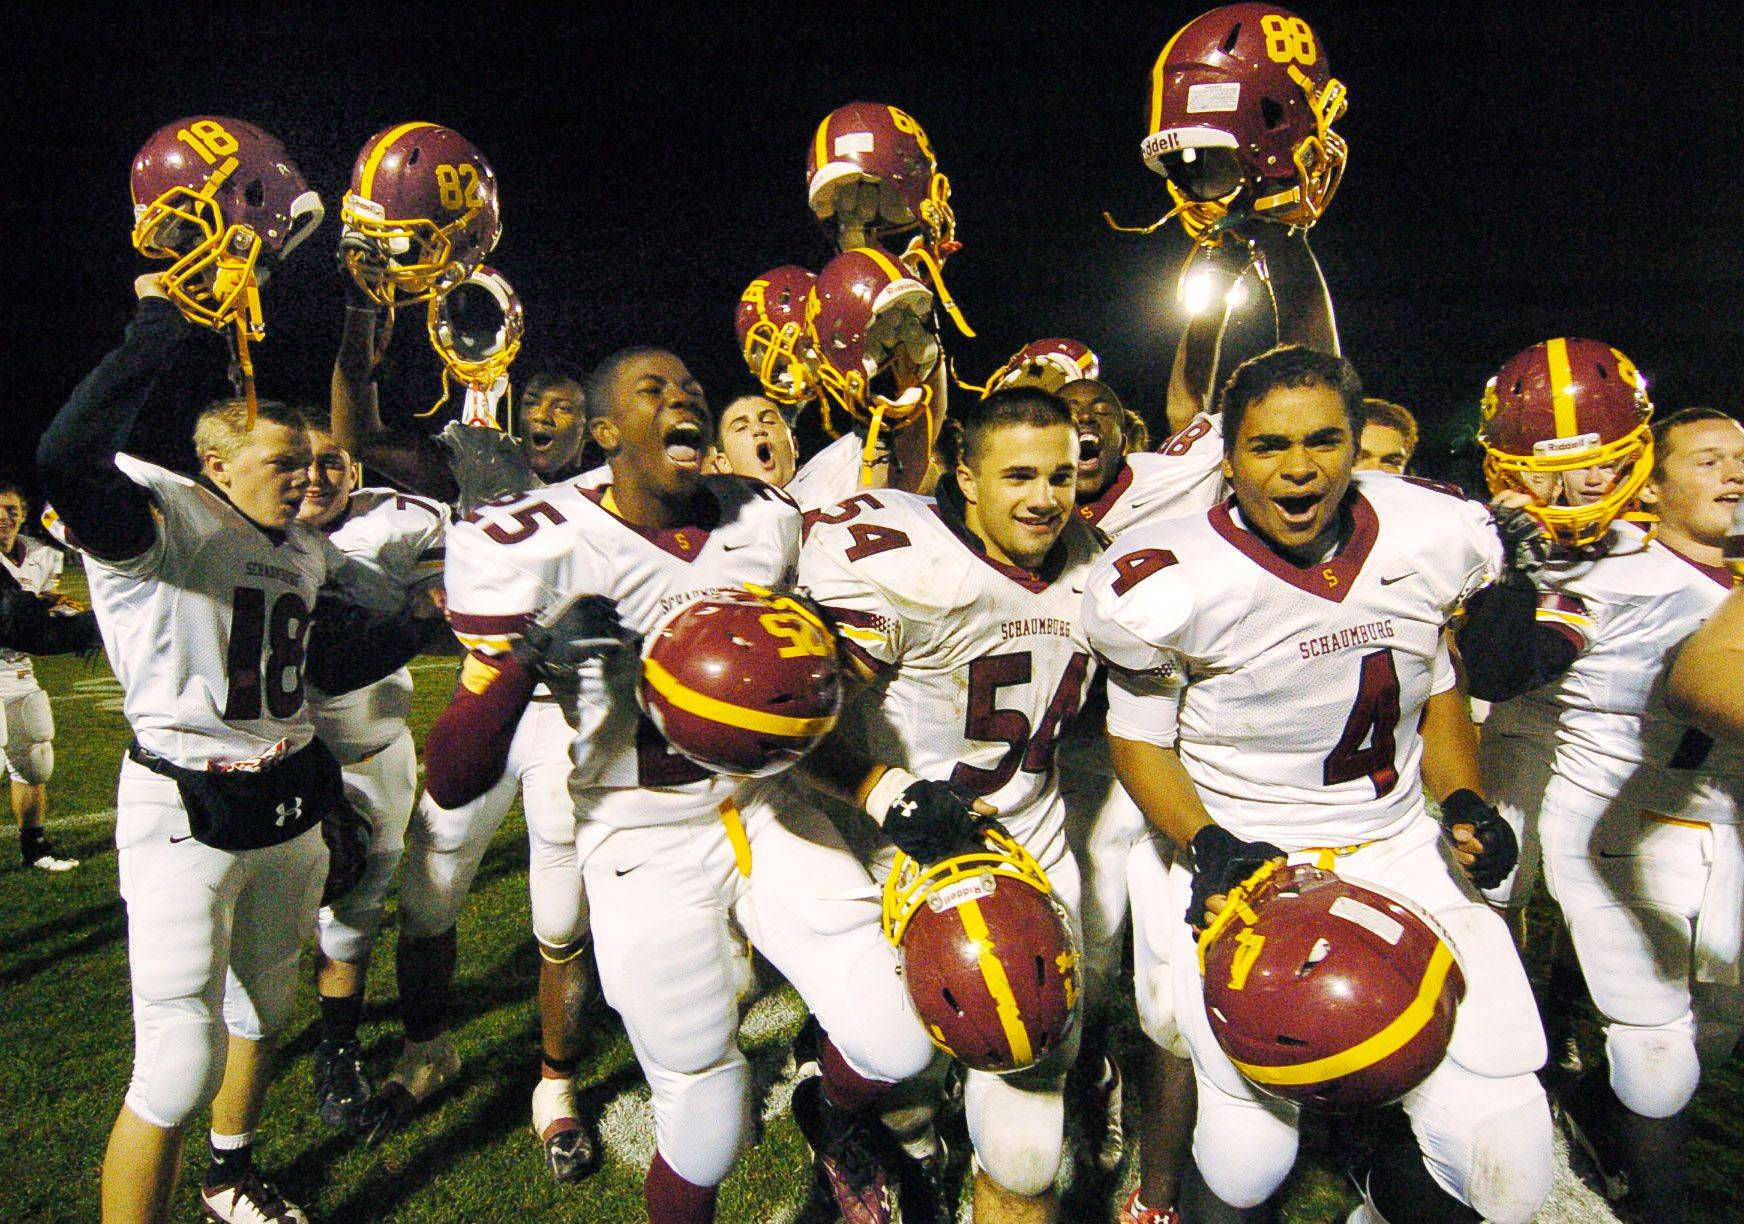 The Schaumburg Saxons celebrate after beating the Elk Grove Grenadiers in first-round playoff football.